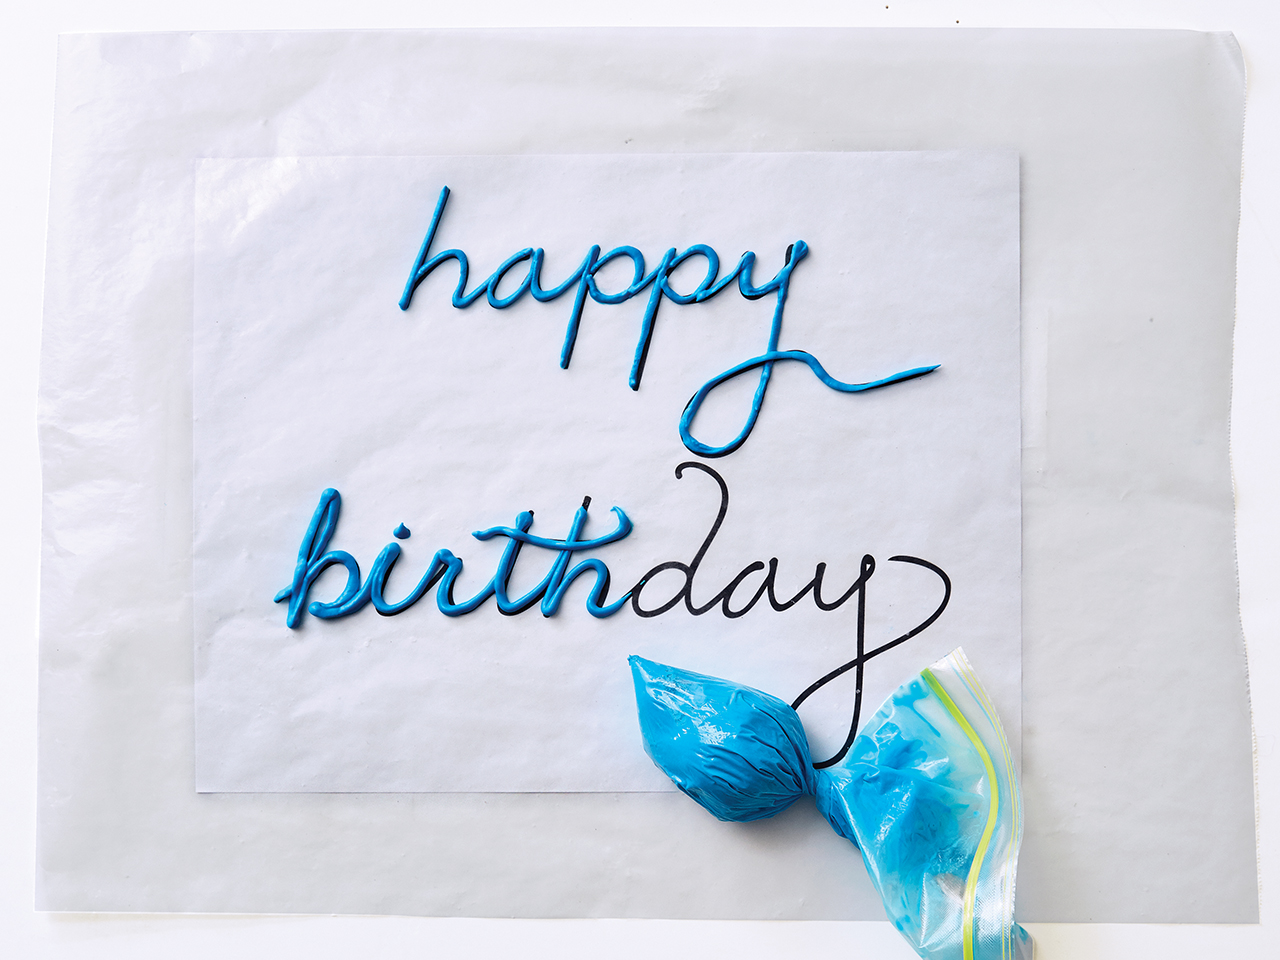 Terrific How To Write Happy Birthday On A Cake Todays Parent Funny Birthday Cards Online Alyptdamsfinfo